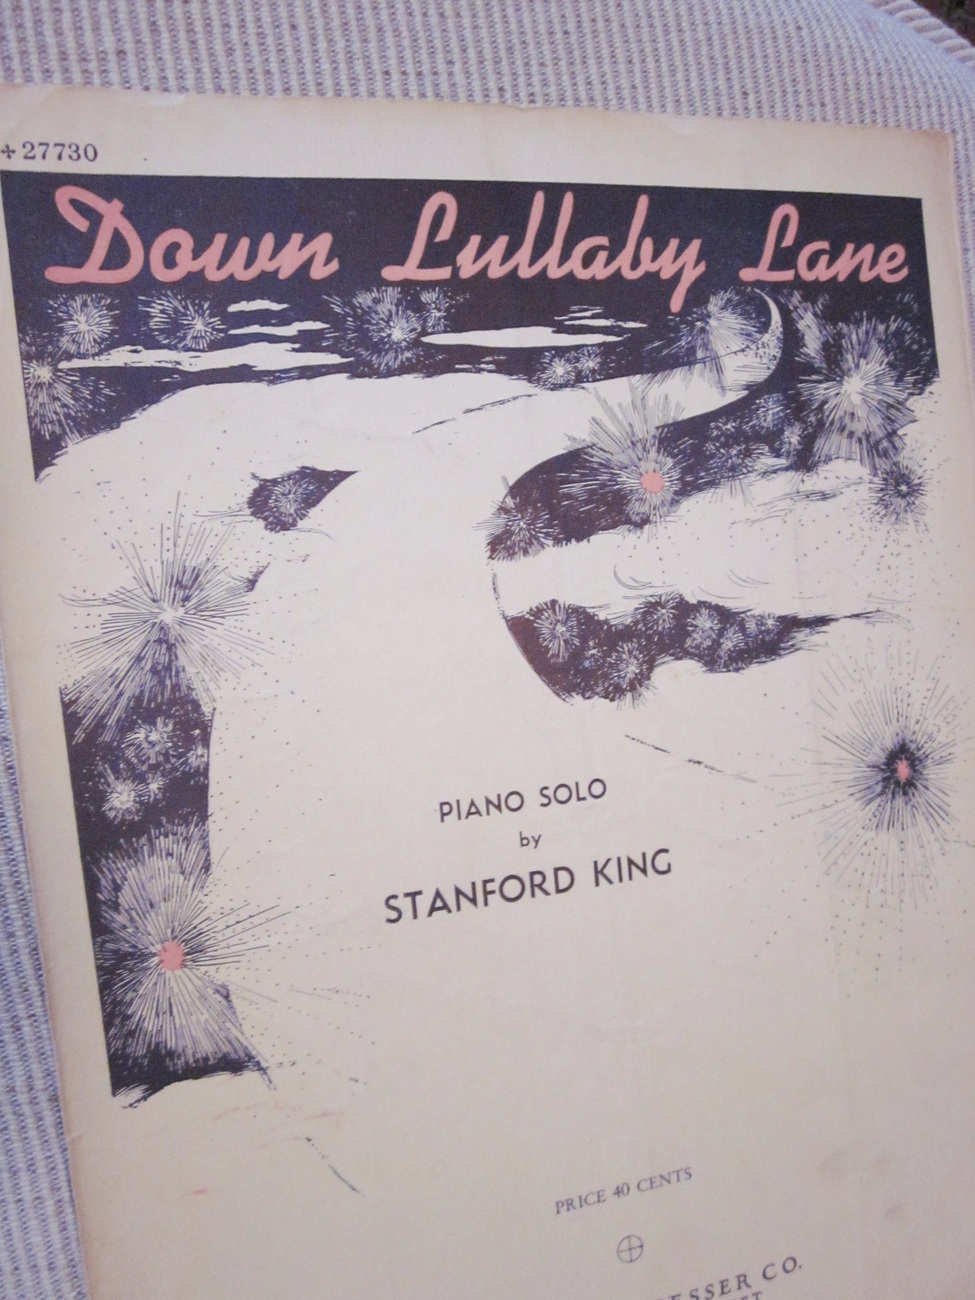 Vintage Sheet Music Down Lullaby Lane Piano Solo by Stanford King 1946